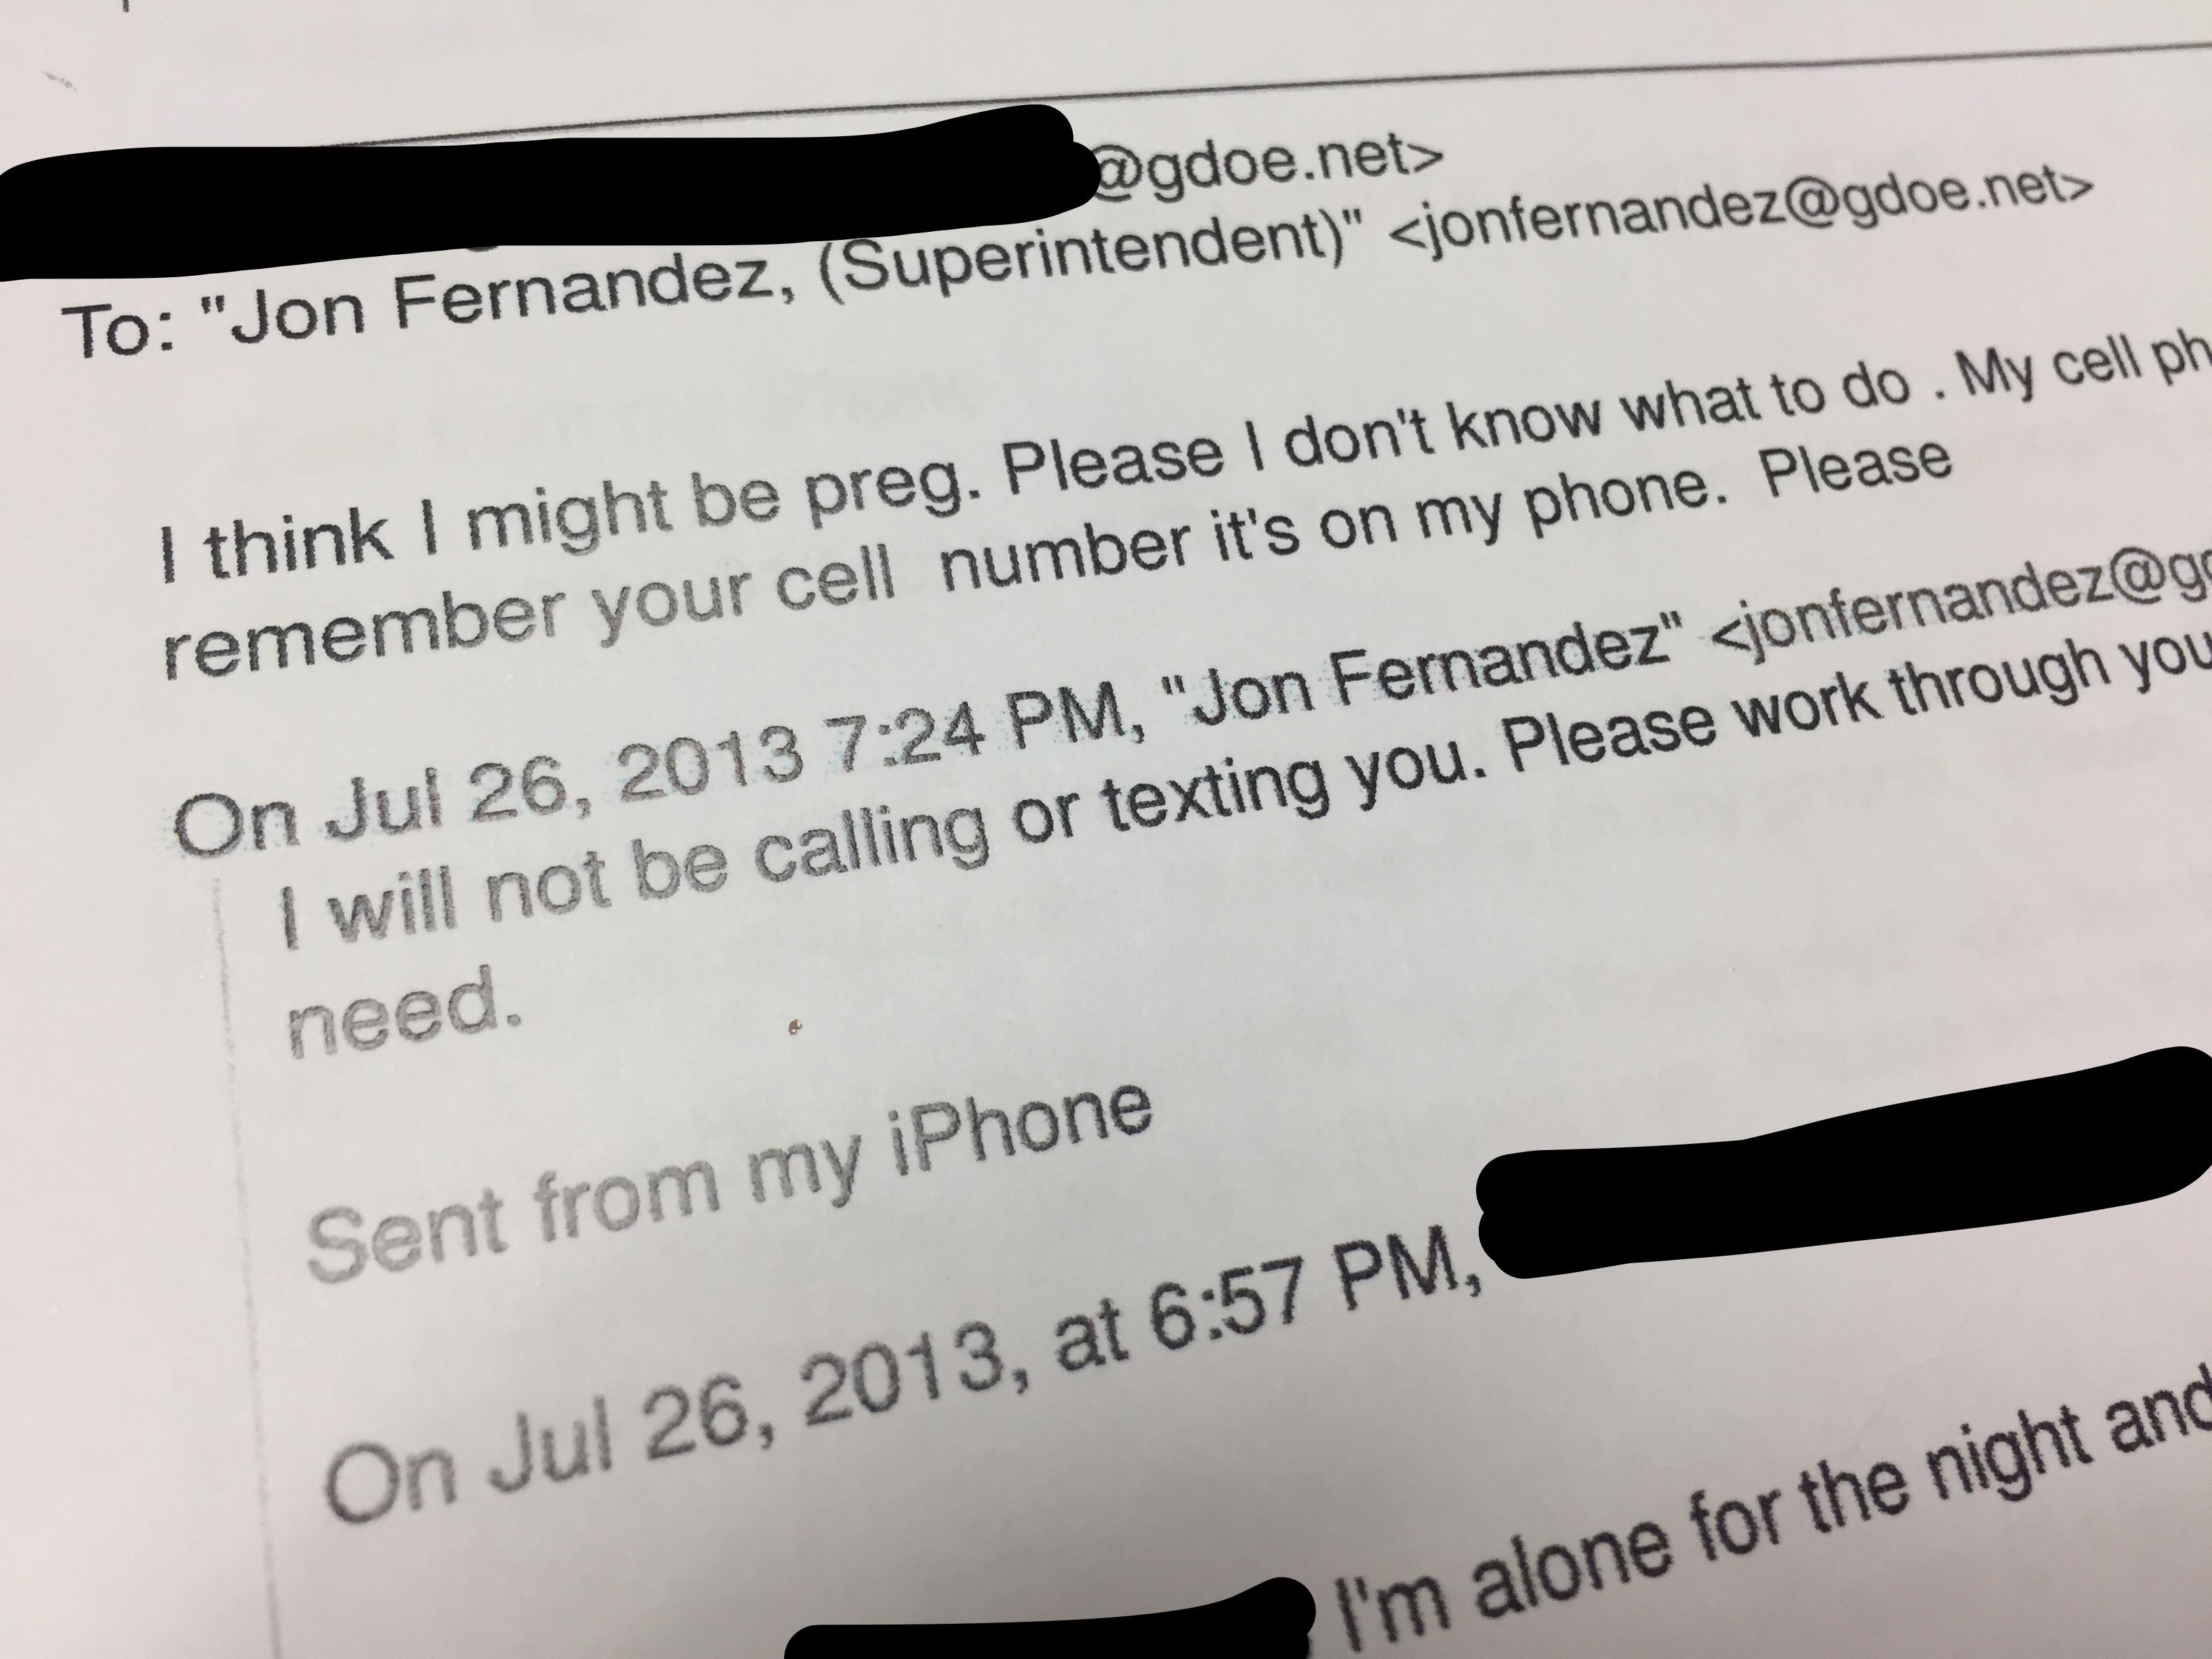 Email from fired GDOE employee to Fernandez alleges sexual